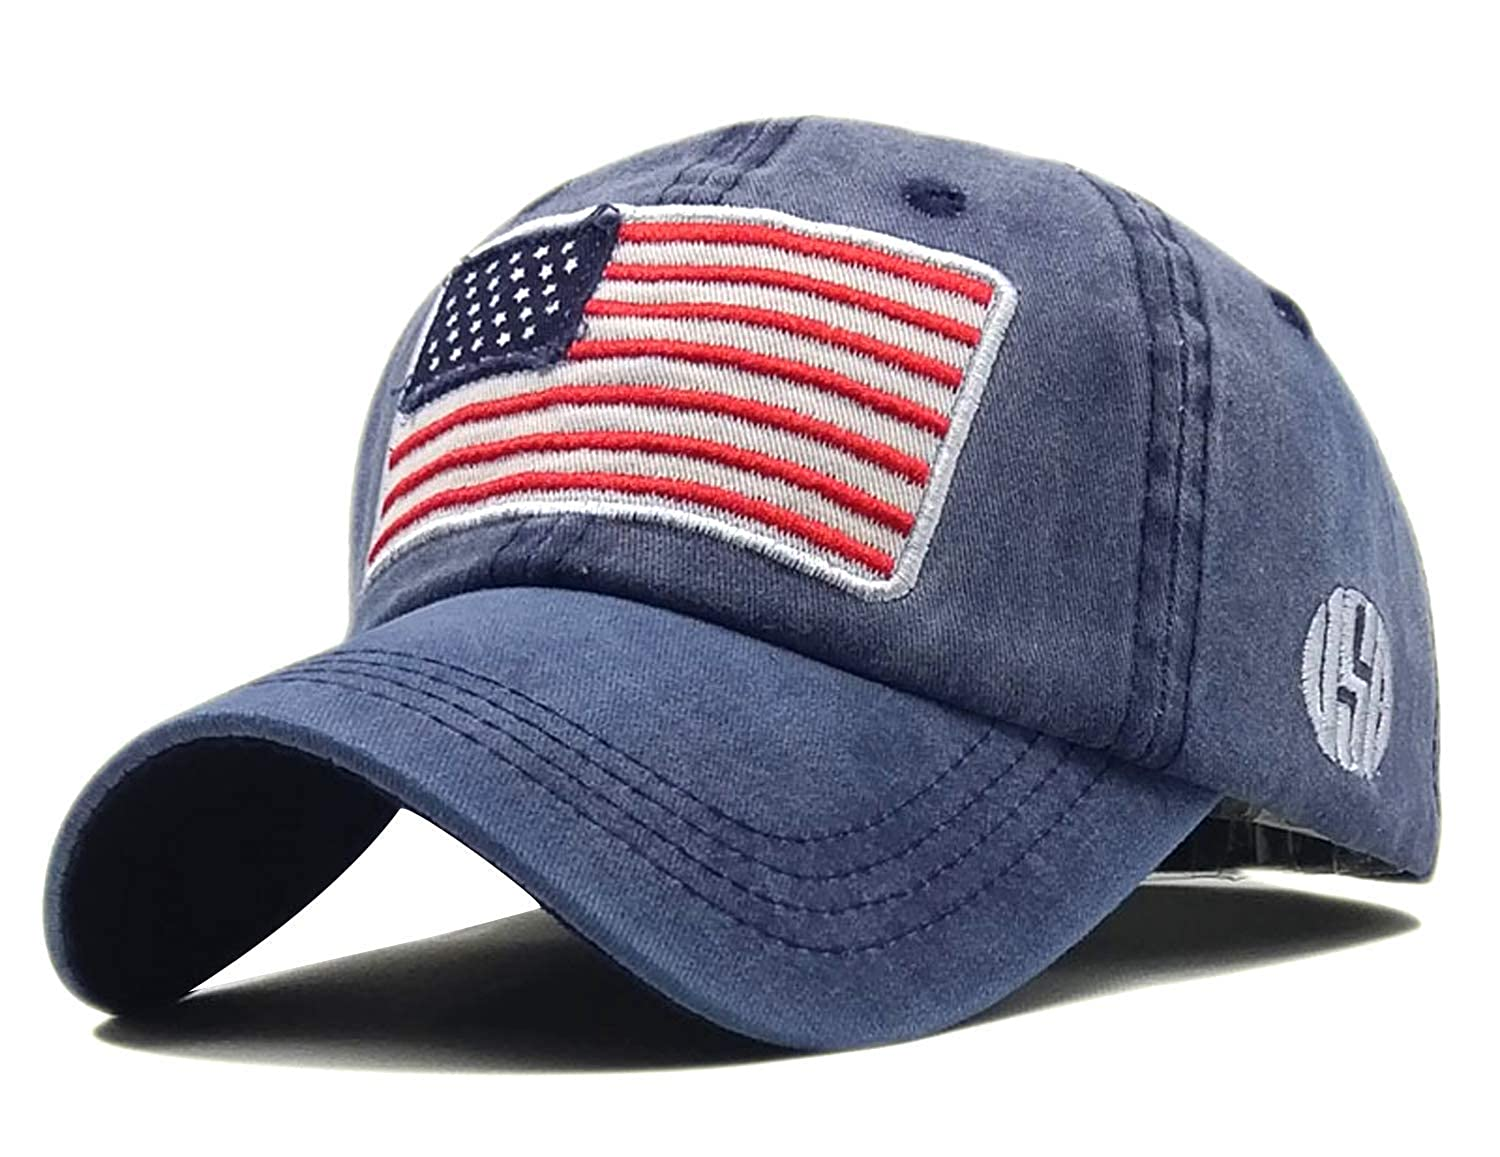 a32e2a60b70eb LOKIDVE USA American Flag Baseball Cap Embroidered Polo Style Military Army  Hat-Black at Amazon Men s Clothing store